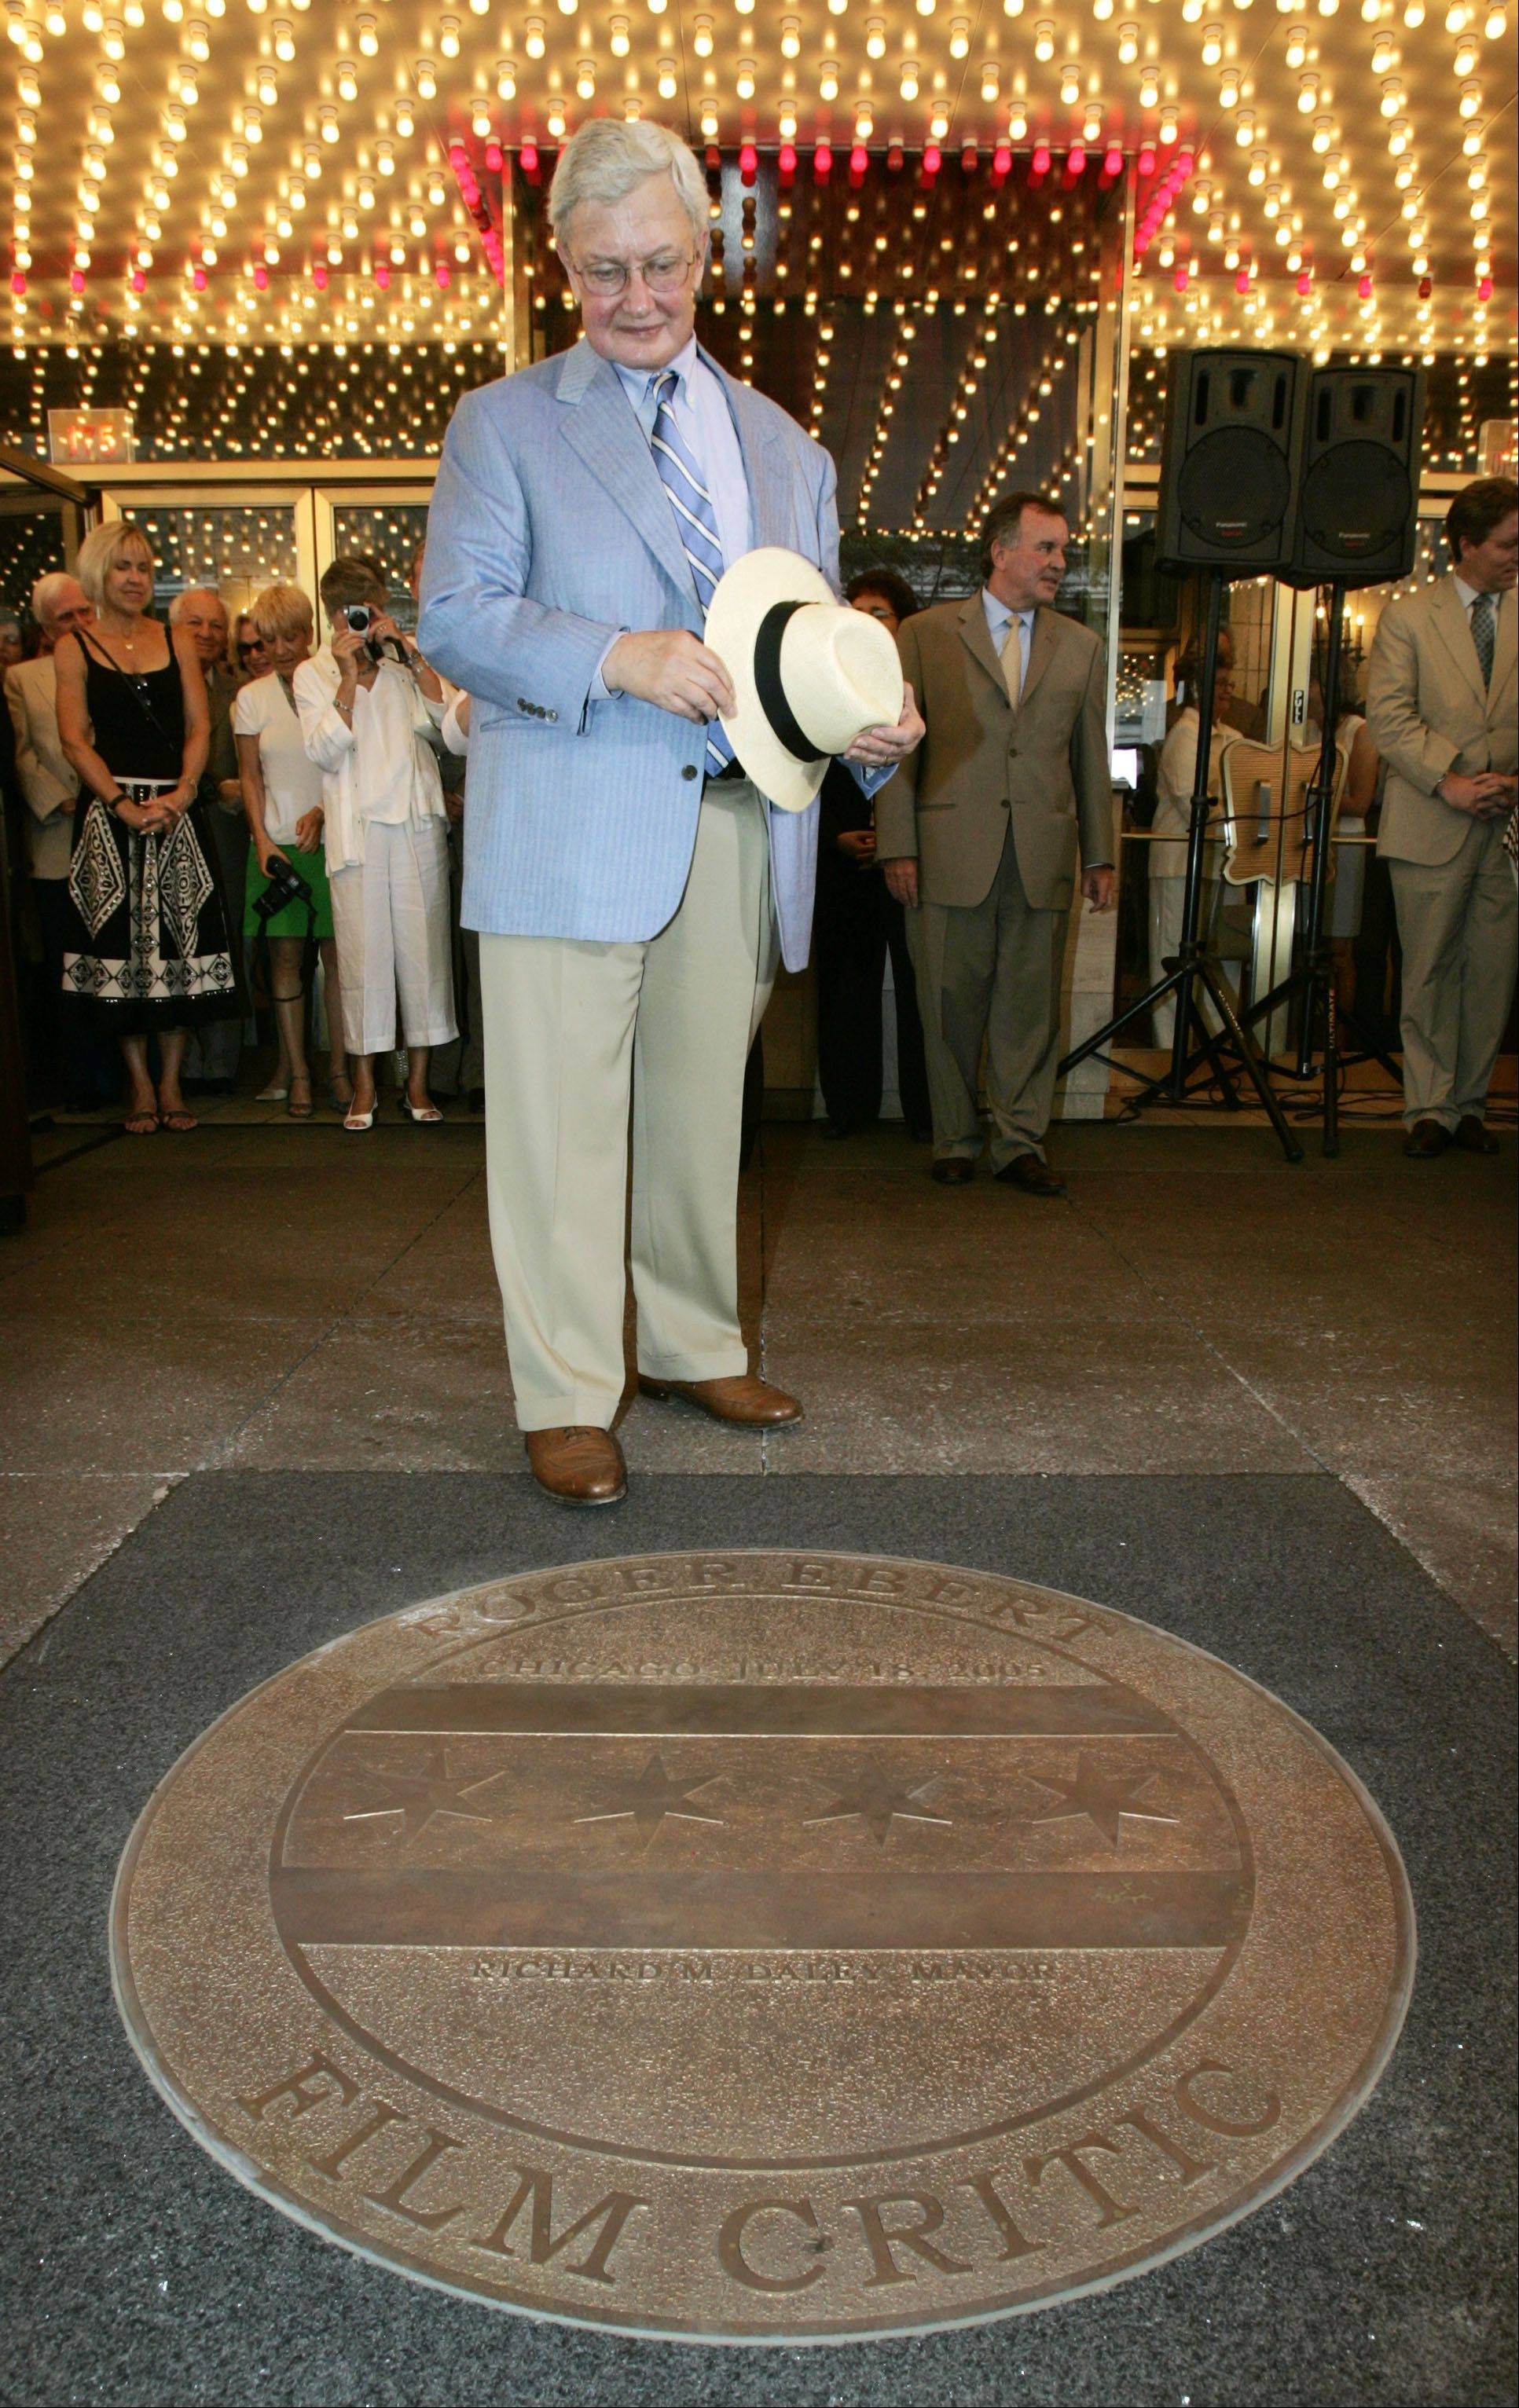 Roger Ebert admires a sidewalk medallion bearing his name that was unveiled under the marquee of the Chicago Theatre on Monday, July 18, 2005, during Chicago's tribute to the hometown film critic. Ebert, 63, became the film critic for the Chicago Sun-Times in 1966 and a decade later became the first film critic to receive a Pulitzer Prize for arts criticism.